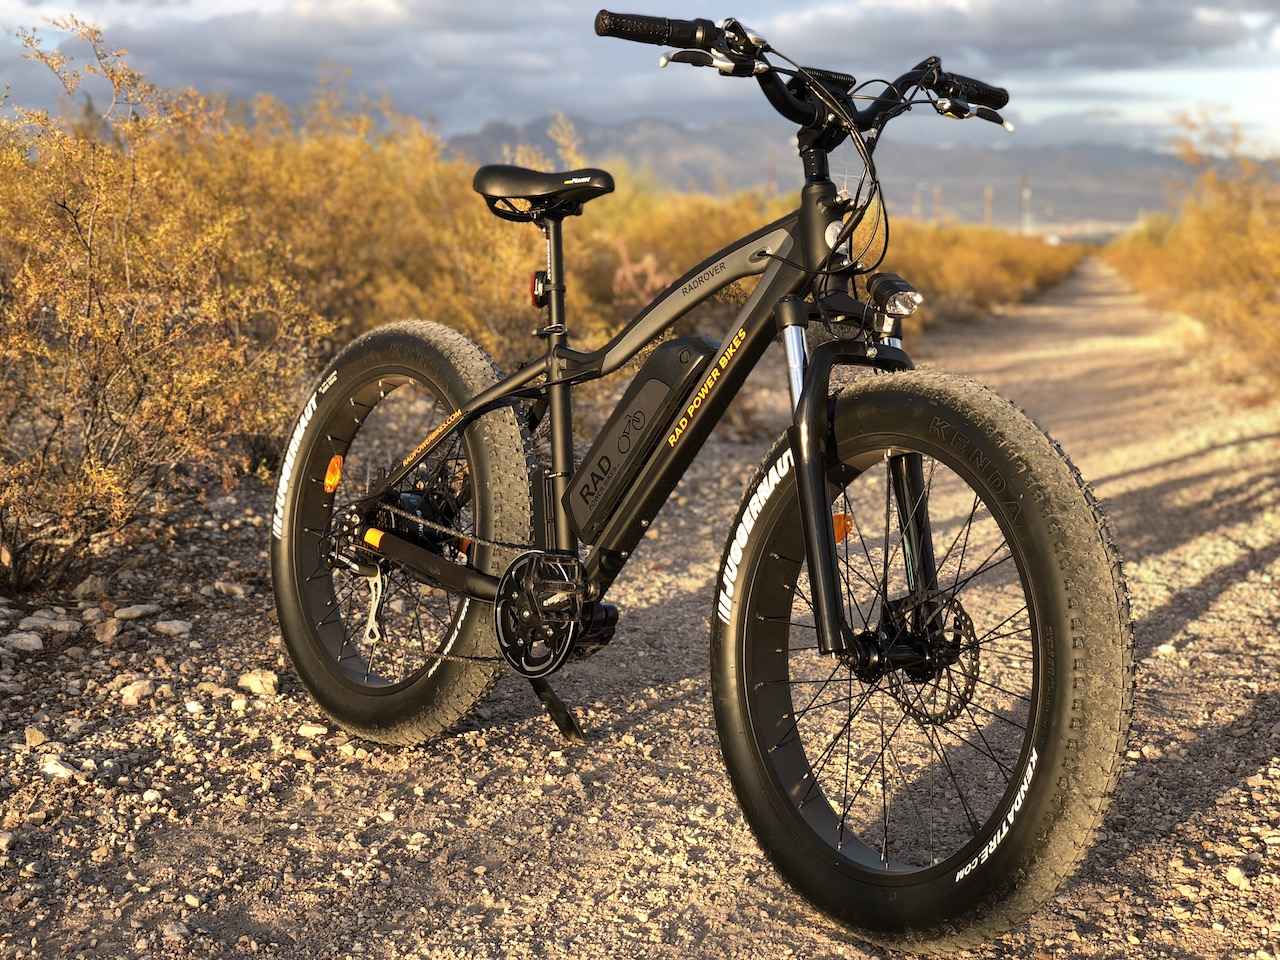 Electric Road Bike Reviews Prices Specs Videos Photos >> Rad Power Bikes Radrover Electric Fat Bike Review Part 1